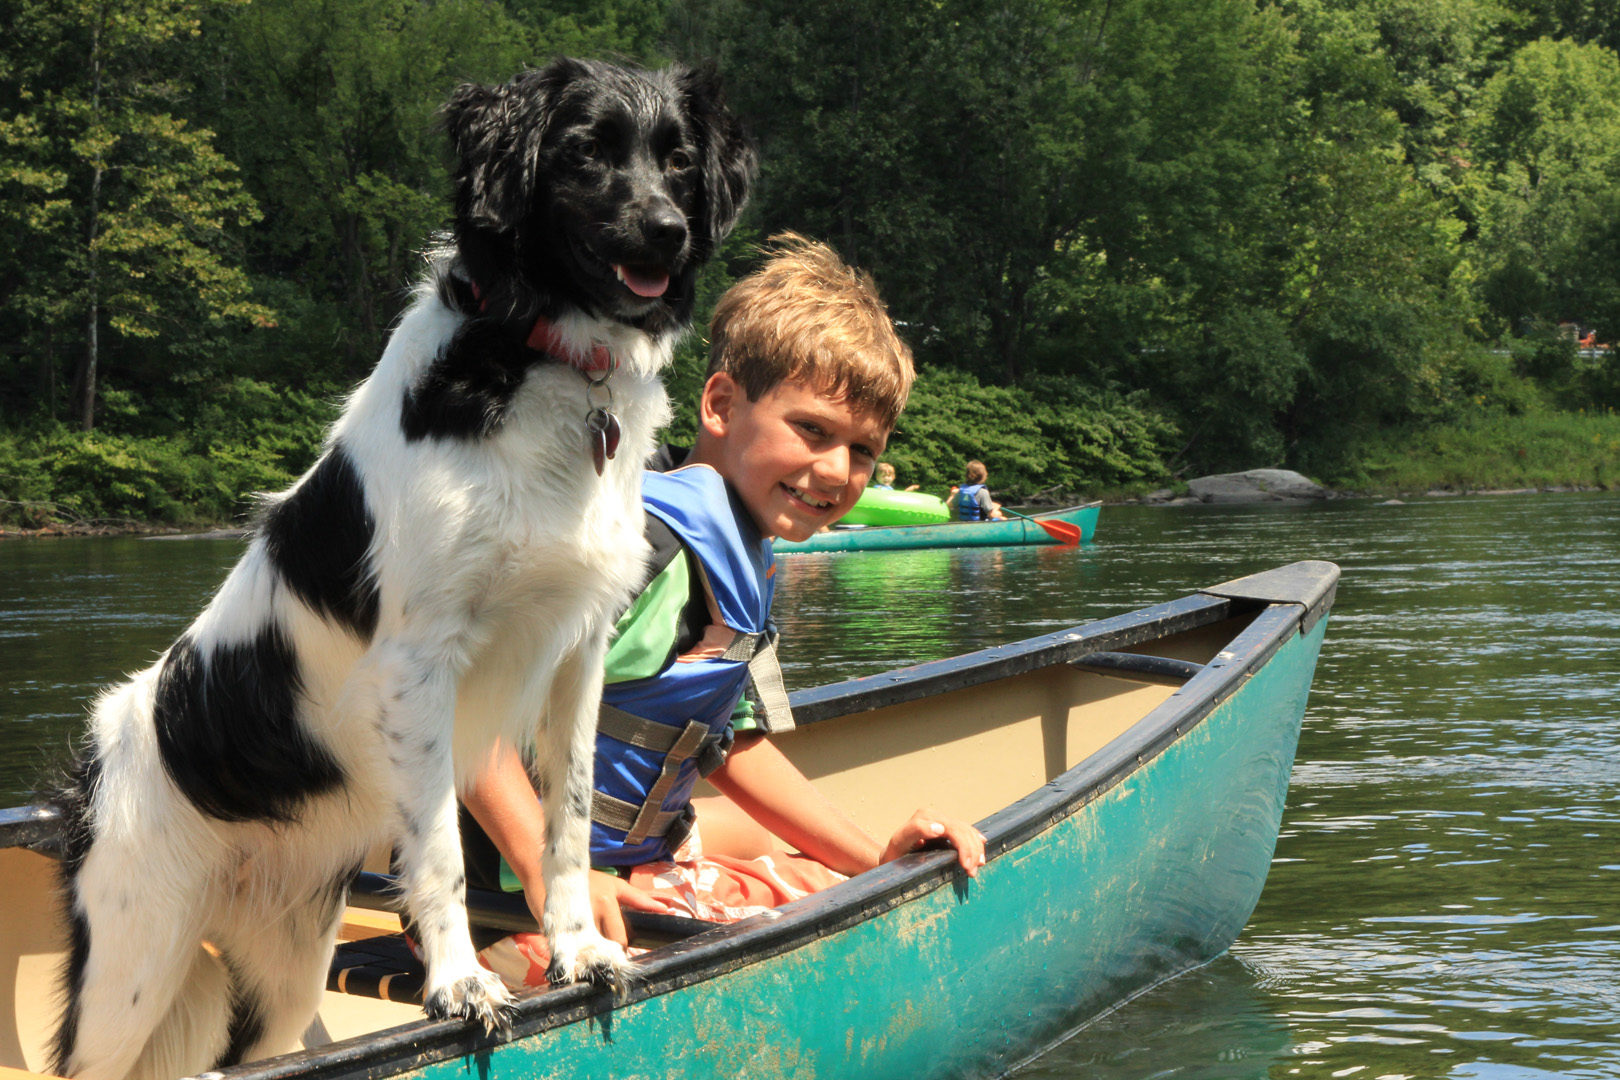 young boy and dog enjoying their canoe ride Indian Head Canoeing Rafting Kayaking Tubing Delaware River